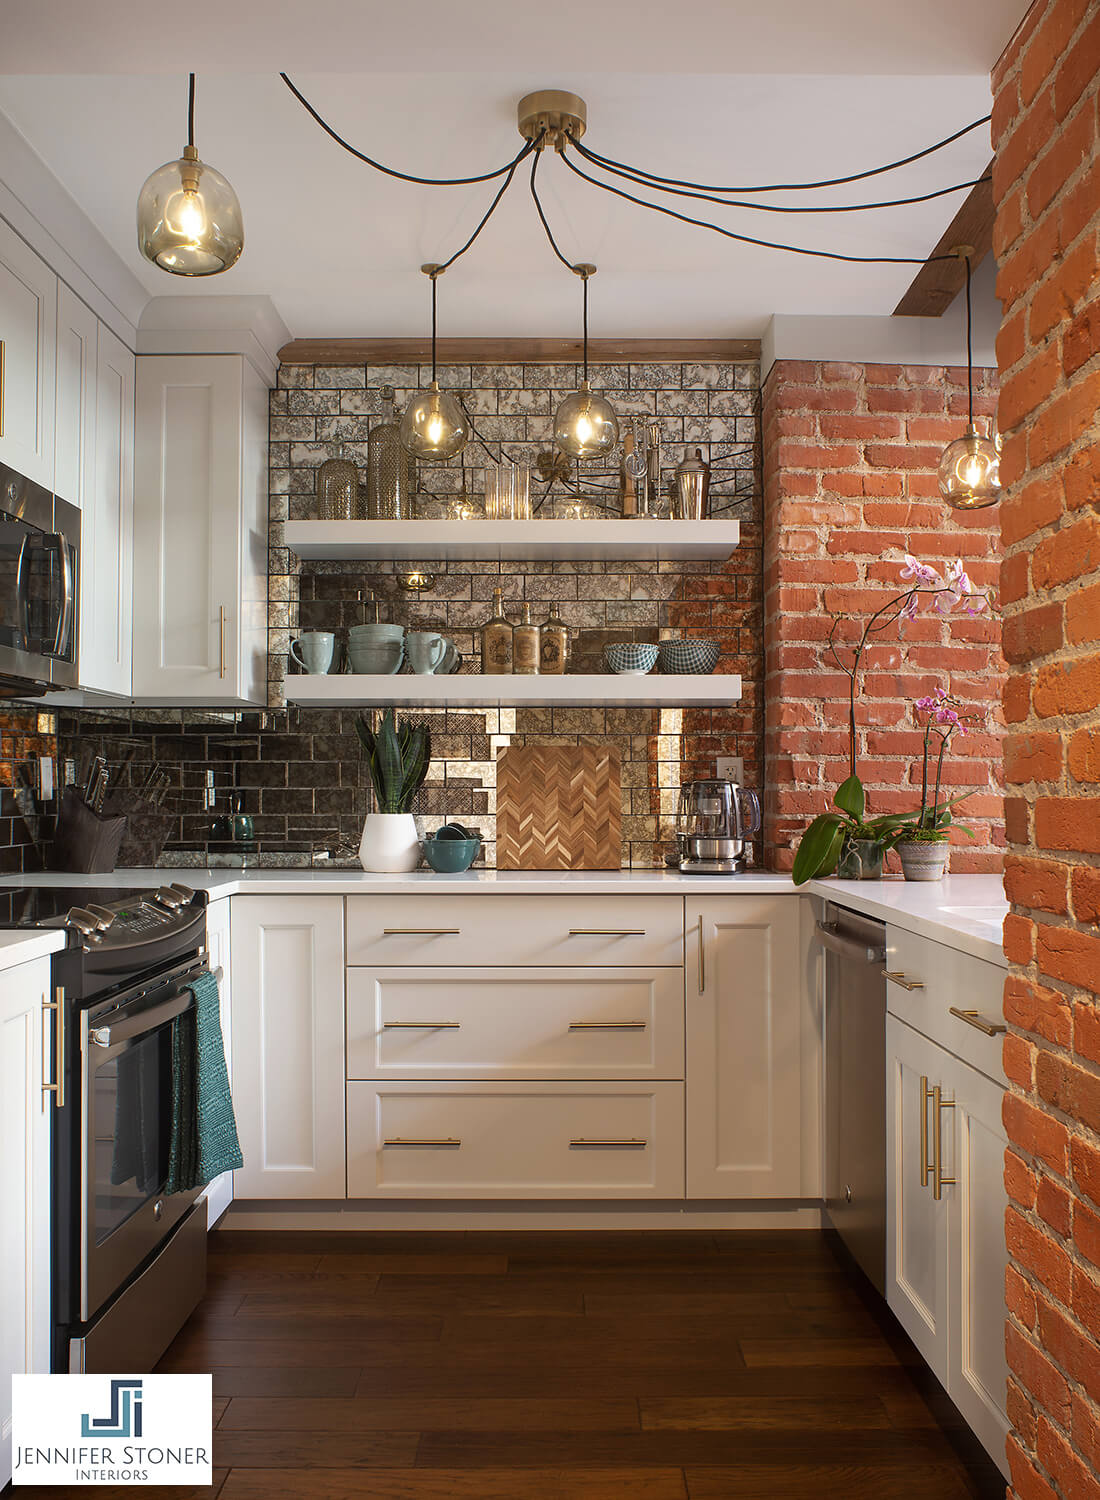 Kitchen - AFTER | Photo by John Magor Photography